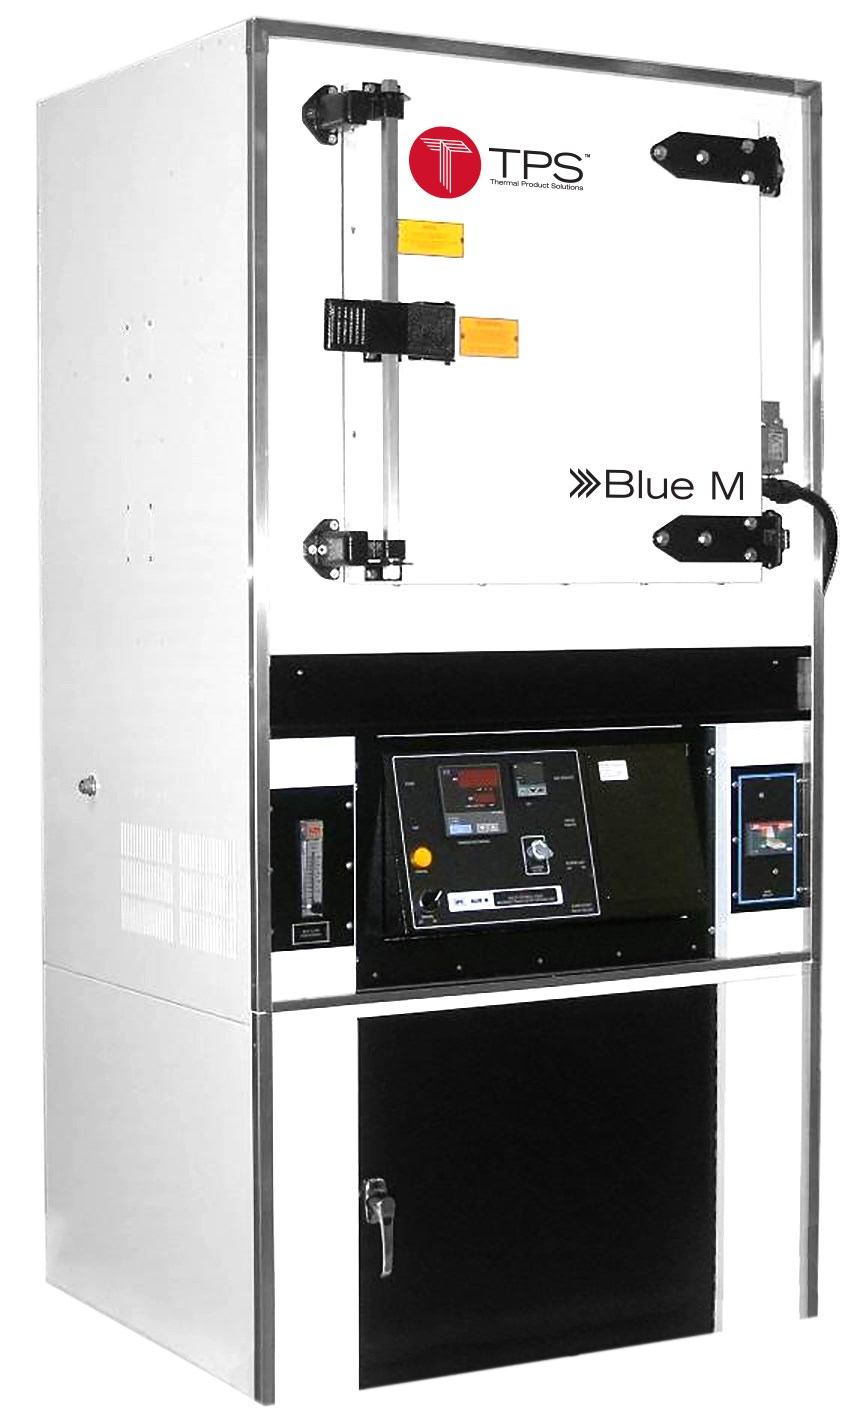 Blue M 146 Clean Room Mechanical Oven